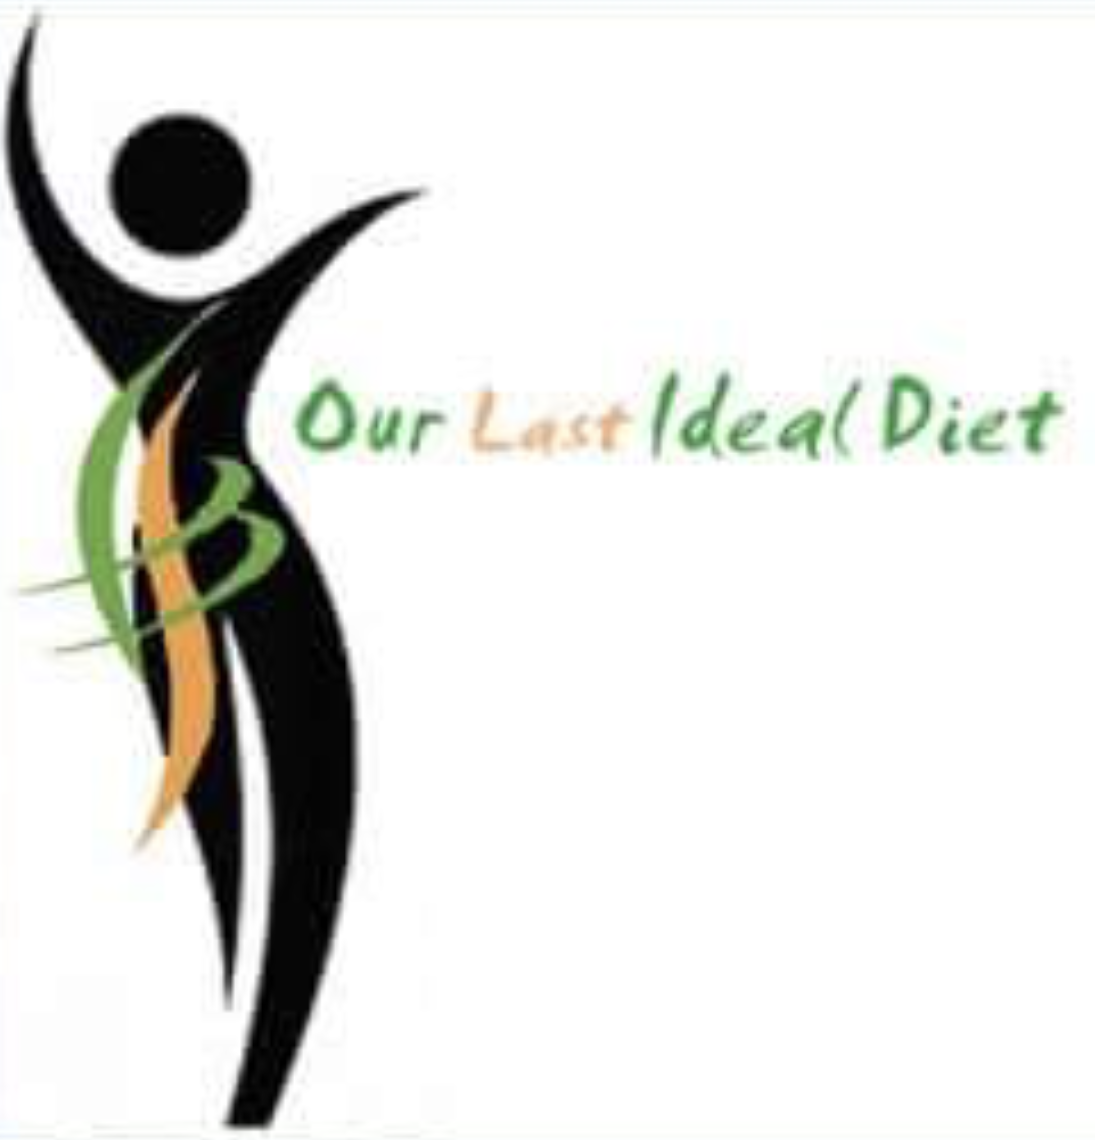 Our Last Ideal Diet